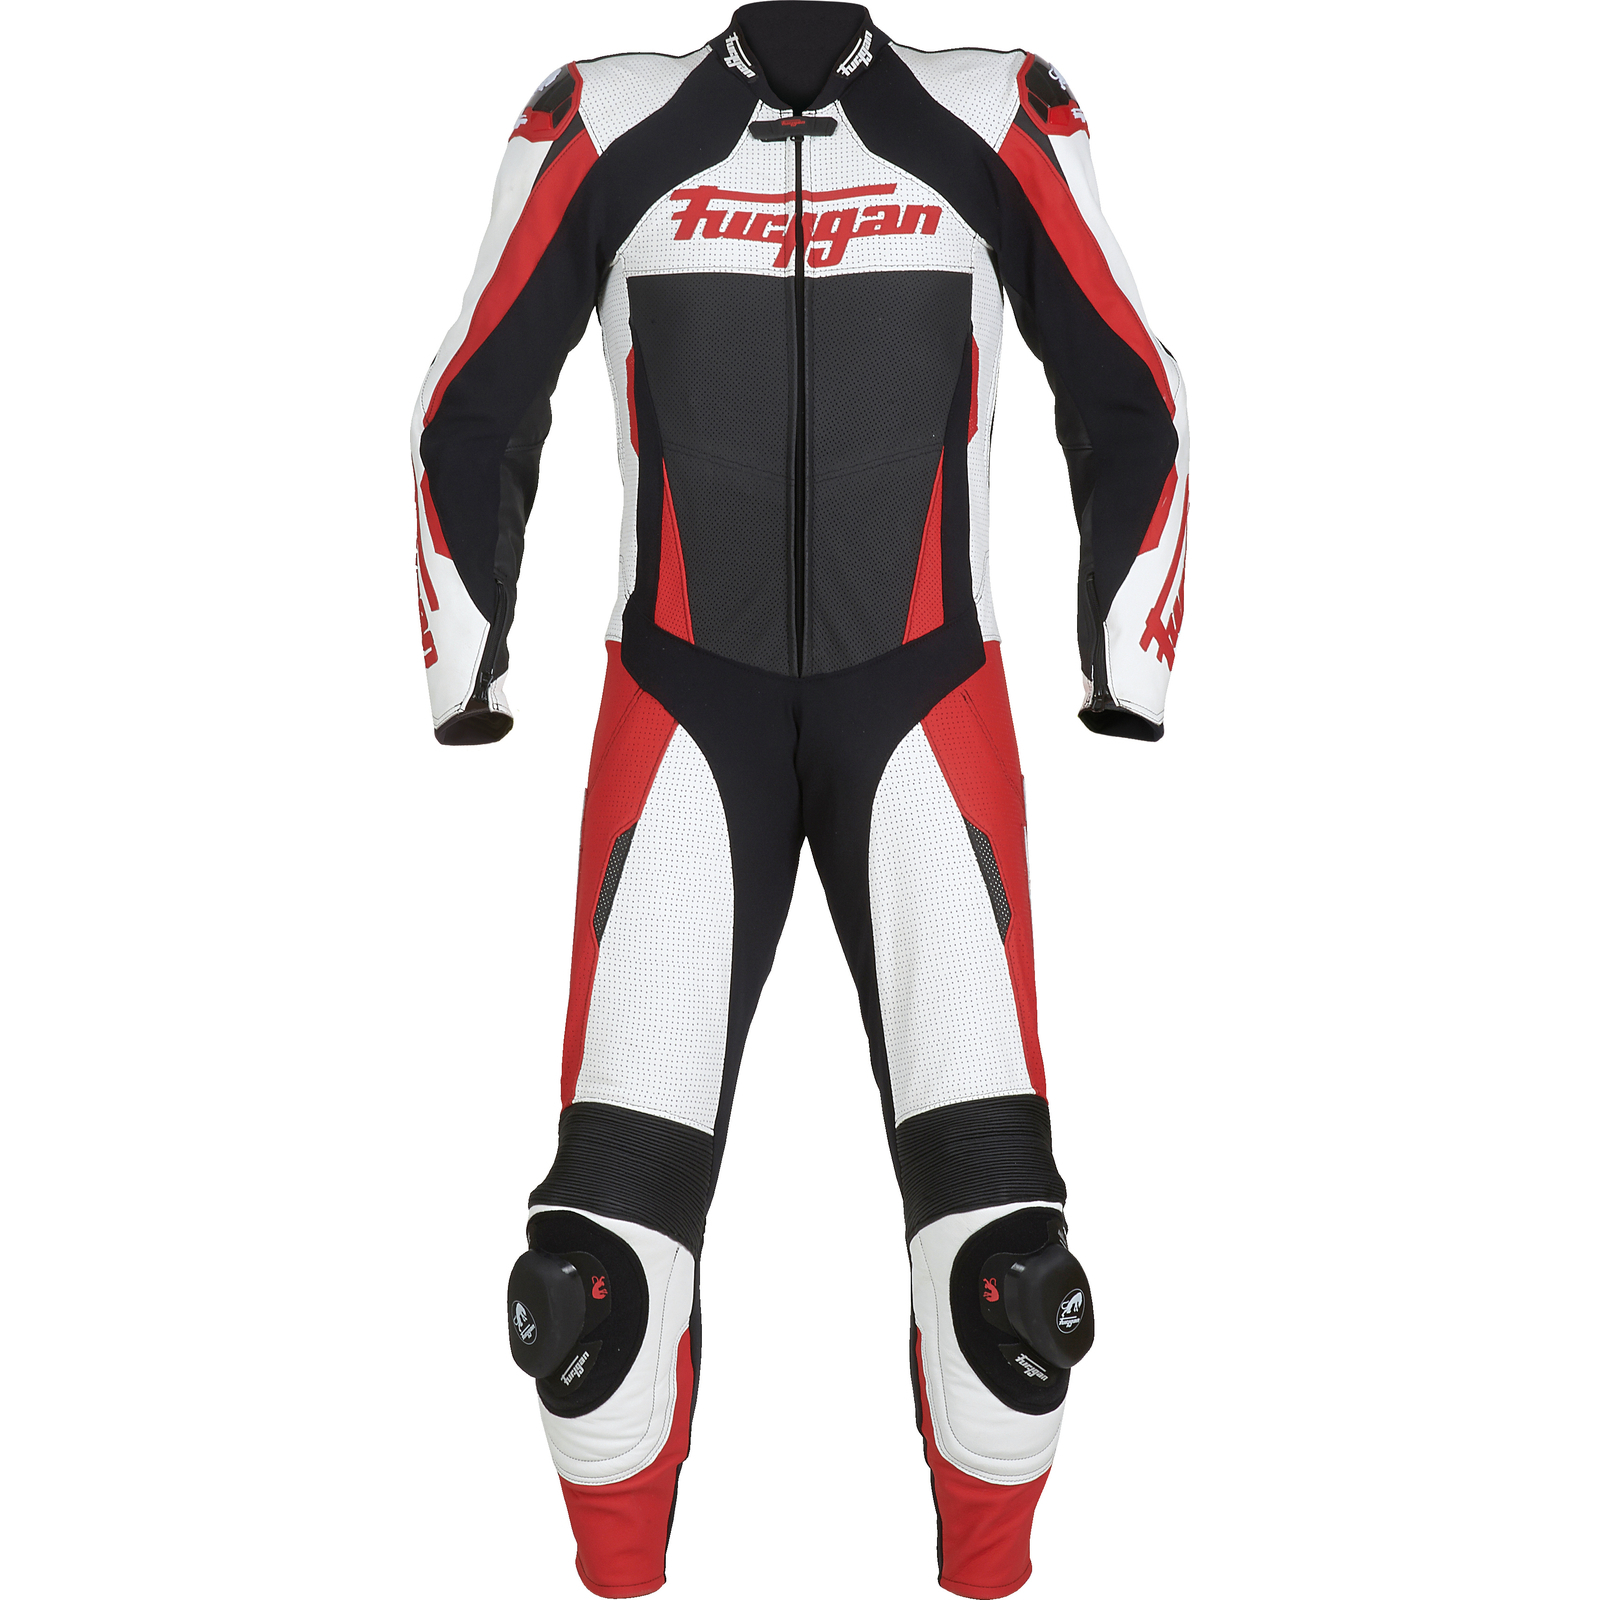 furygan full apex perforated one piece motorcycle suit. Black Bedroom Furniture Sets. Home Design Ideas